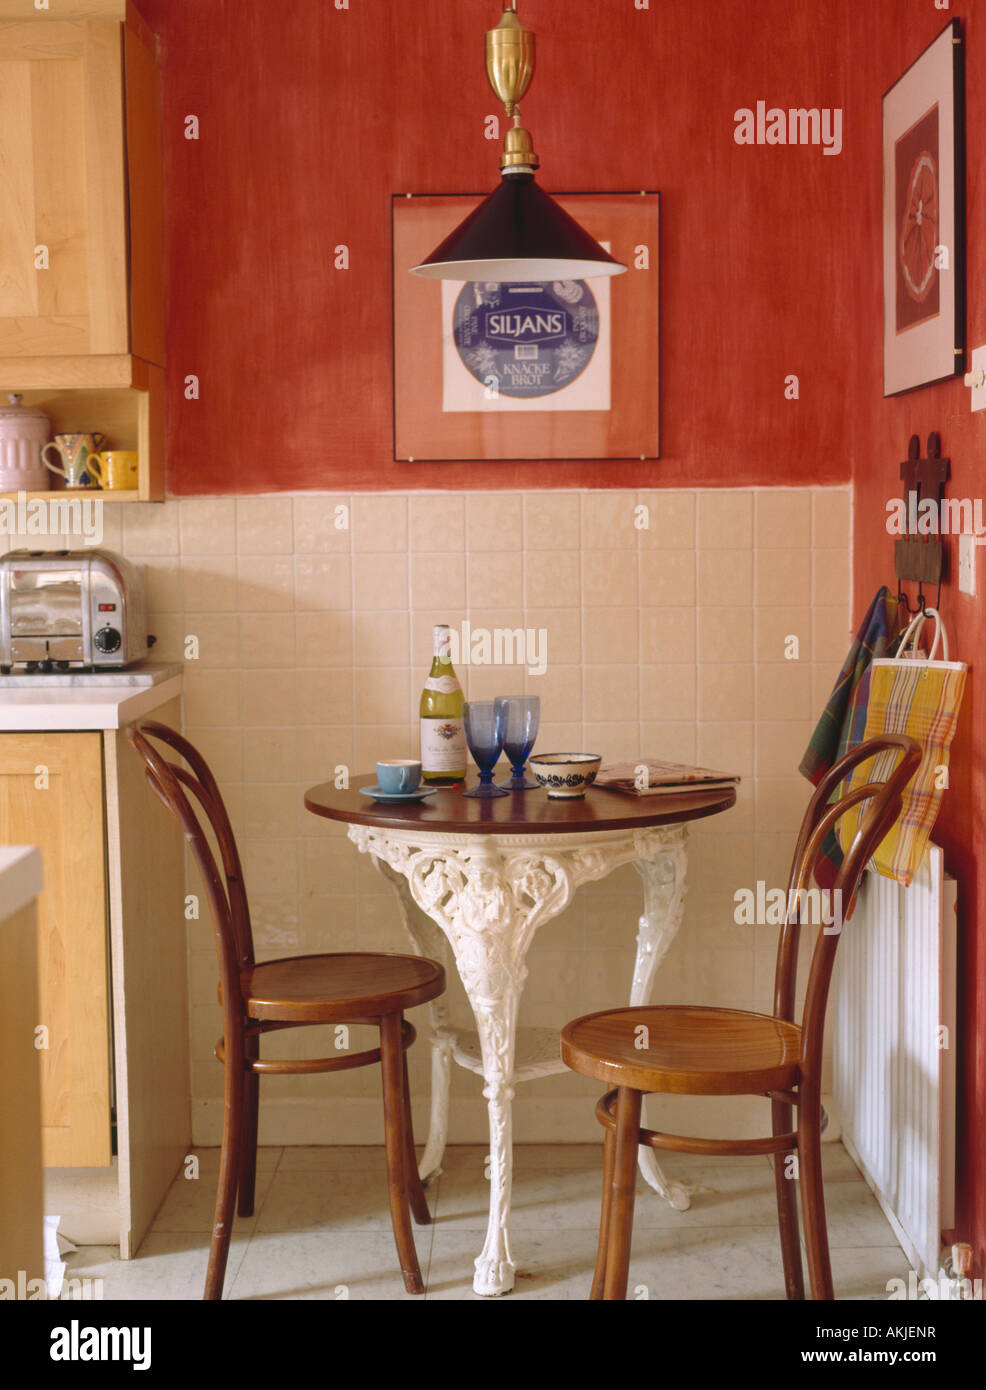 Thonet bentwood sedie e Francese antico cafe tabella in angolo ...